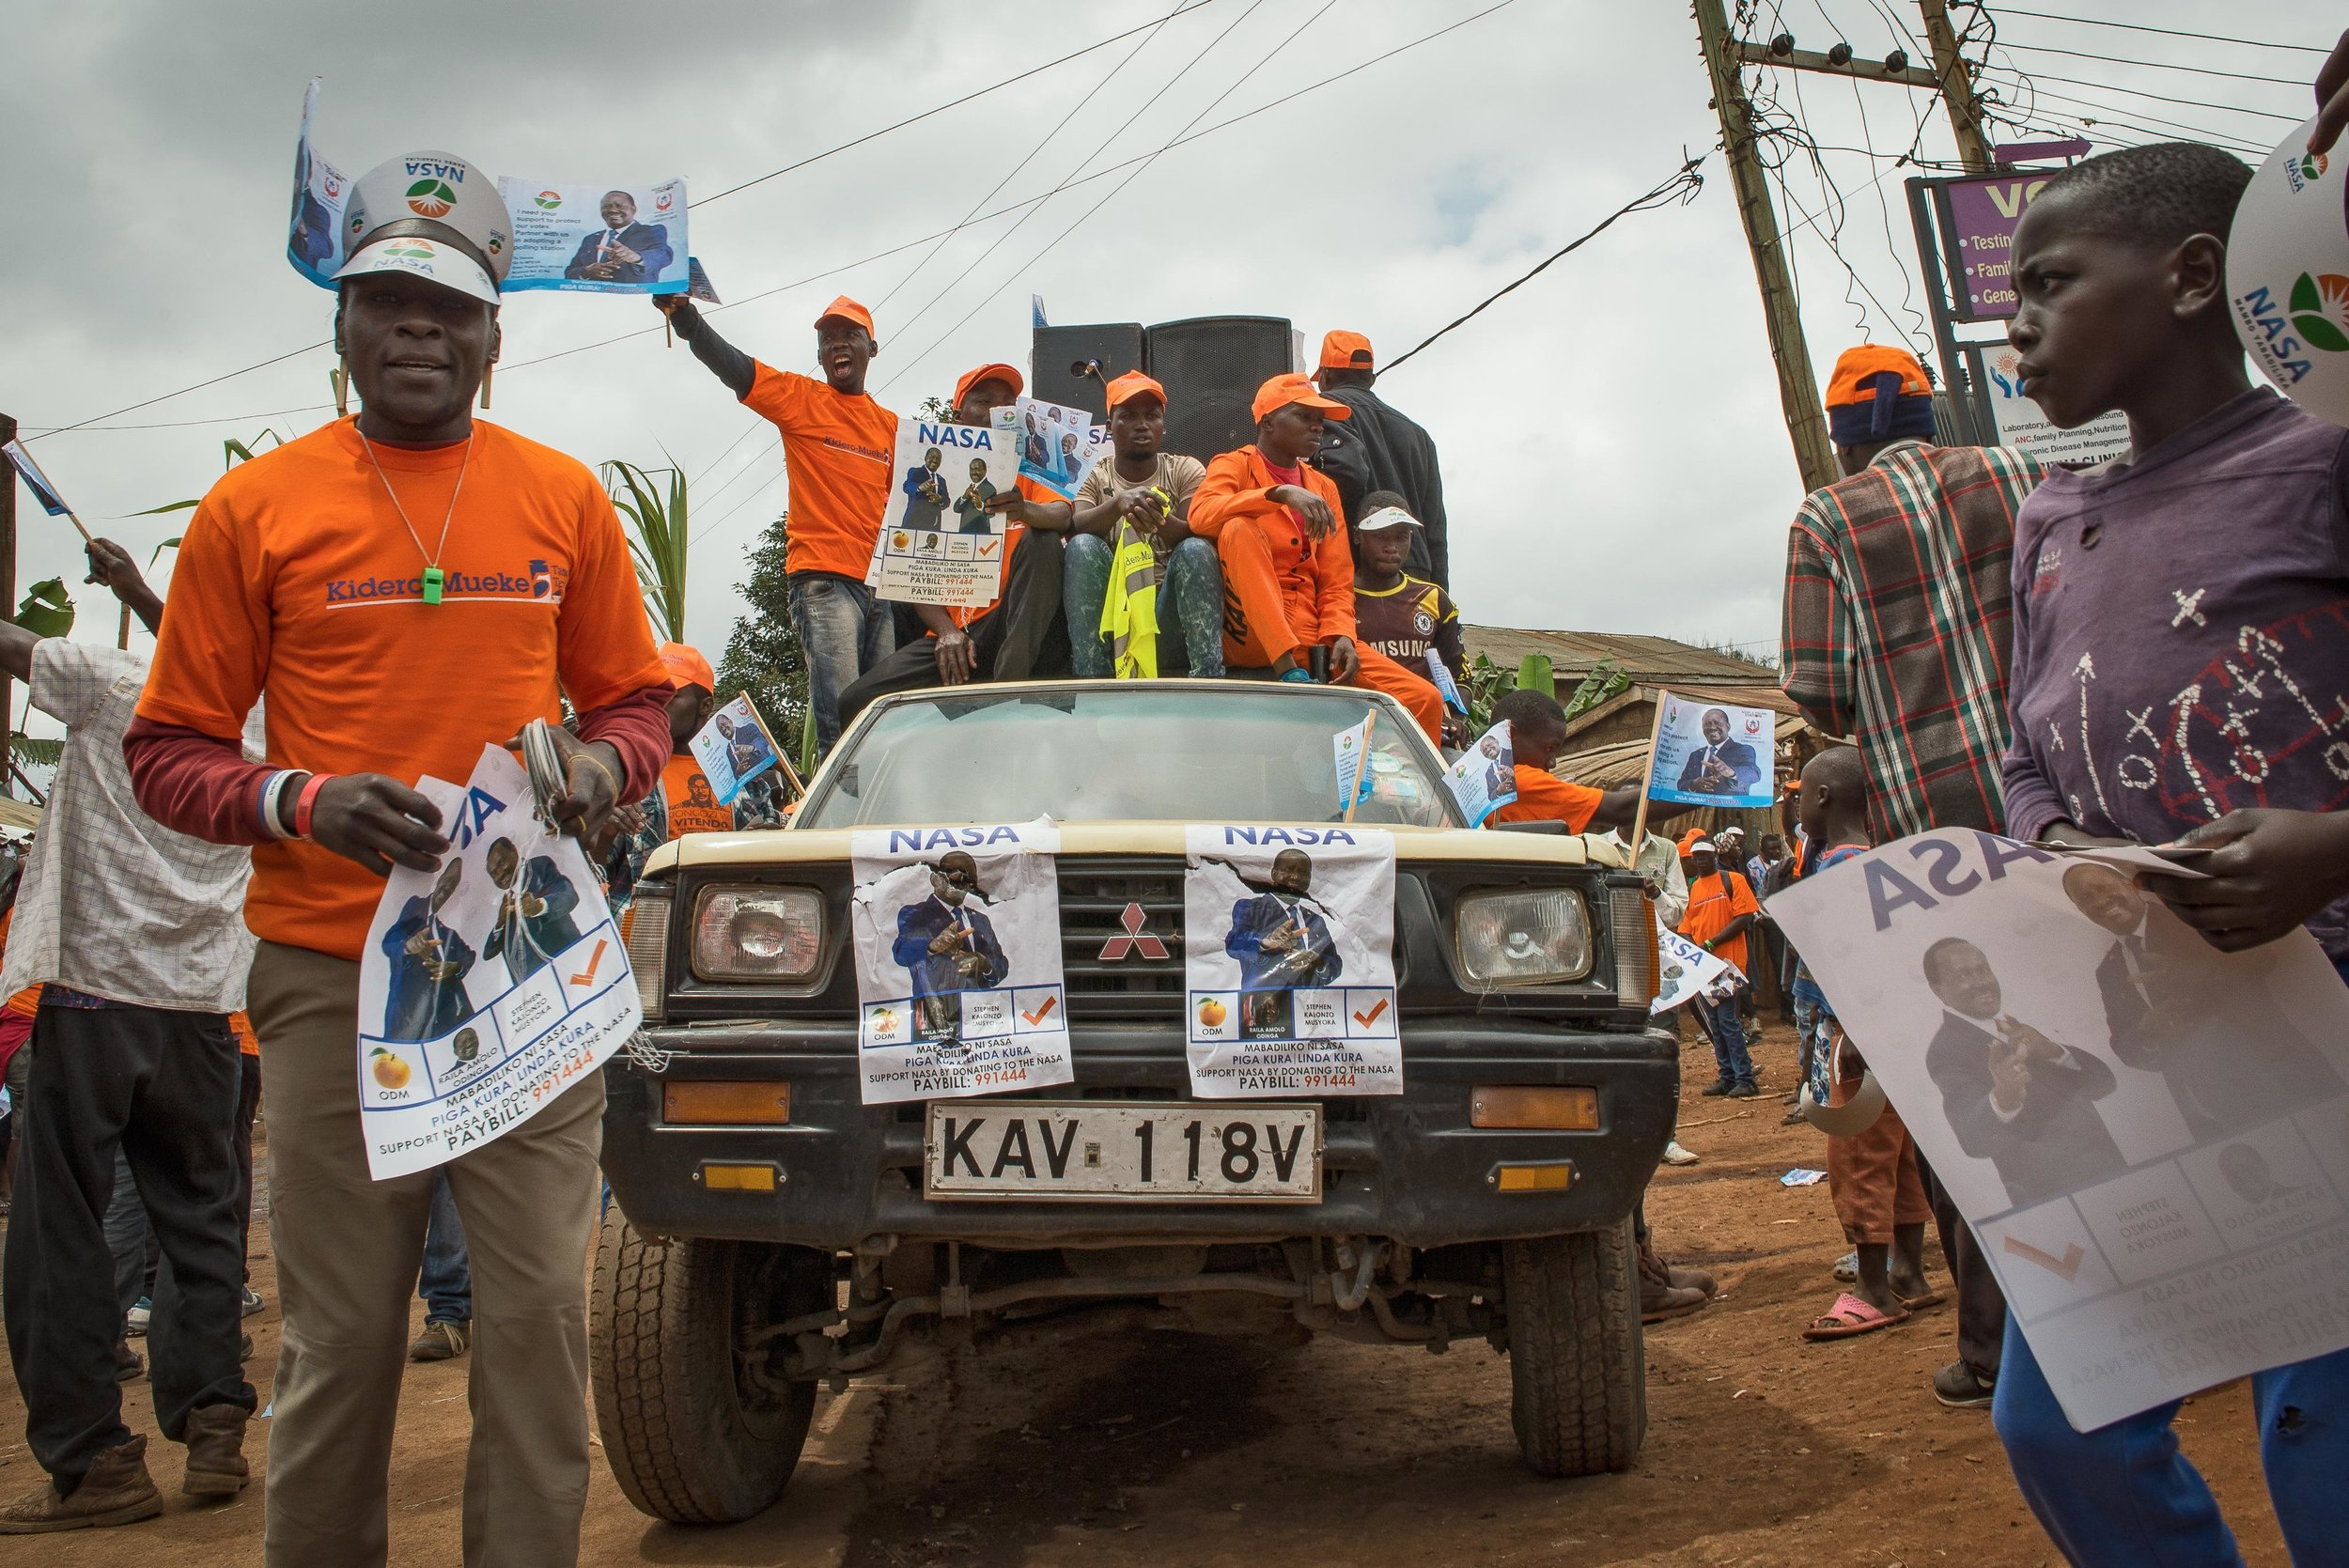 Opposition party members chant campaign slogans in support of National Super Alliance Presidential candidate, Raila Odinga in Kibera, Nairobi. Public Radio International, August 2017.